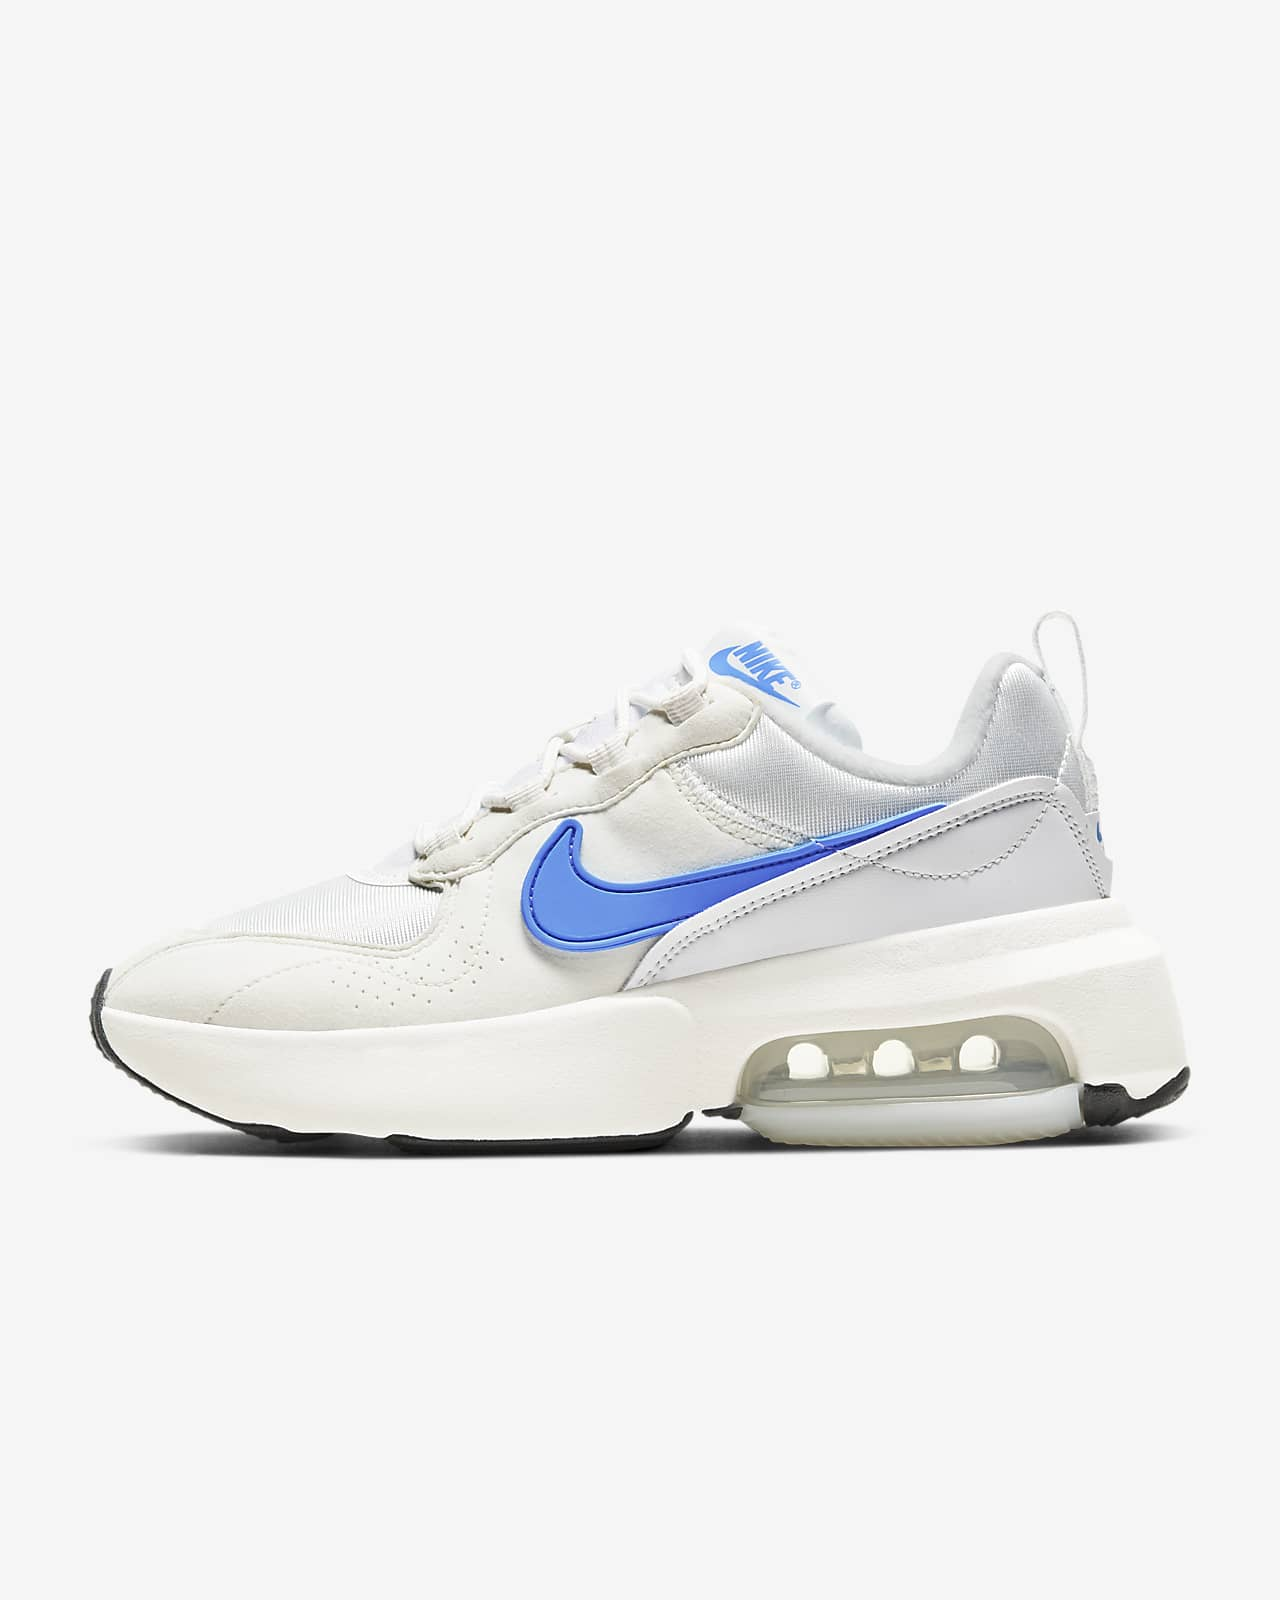 Nike Air Max Verona Women's Shoe